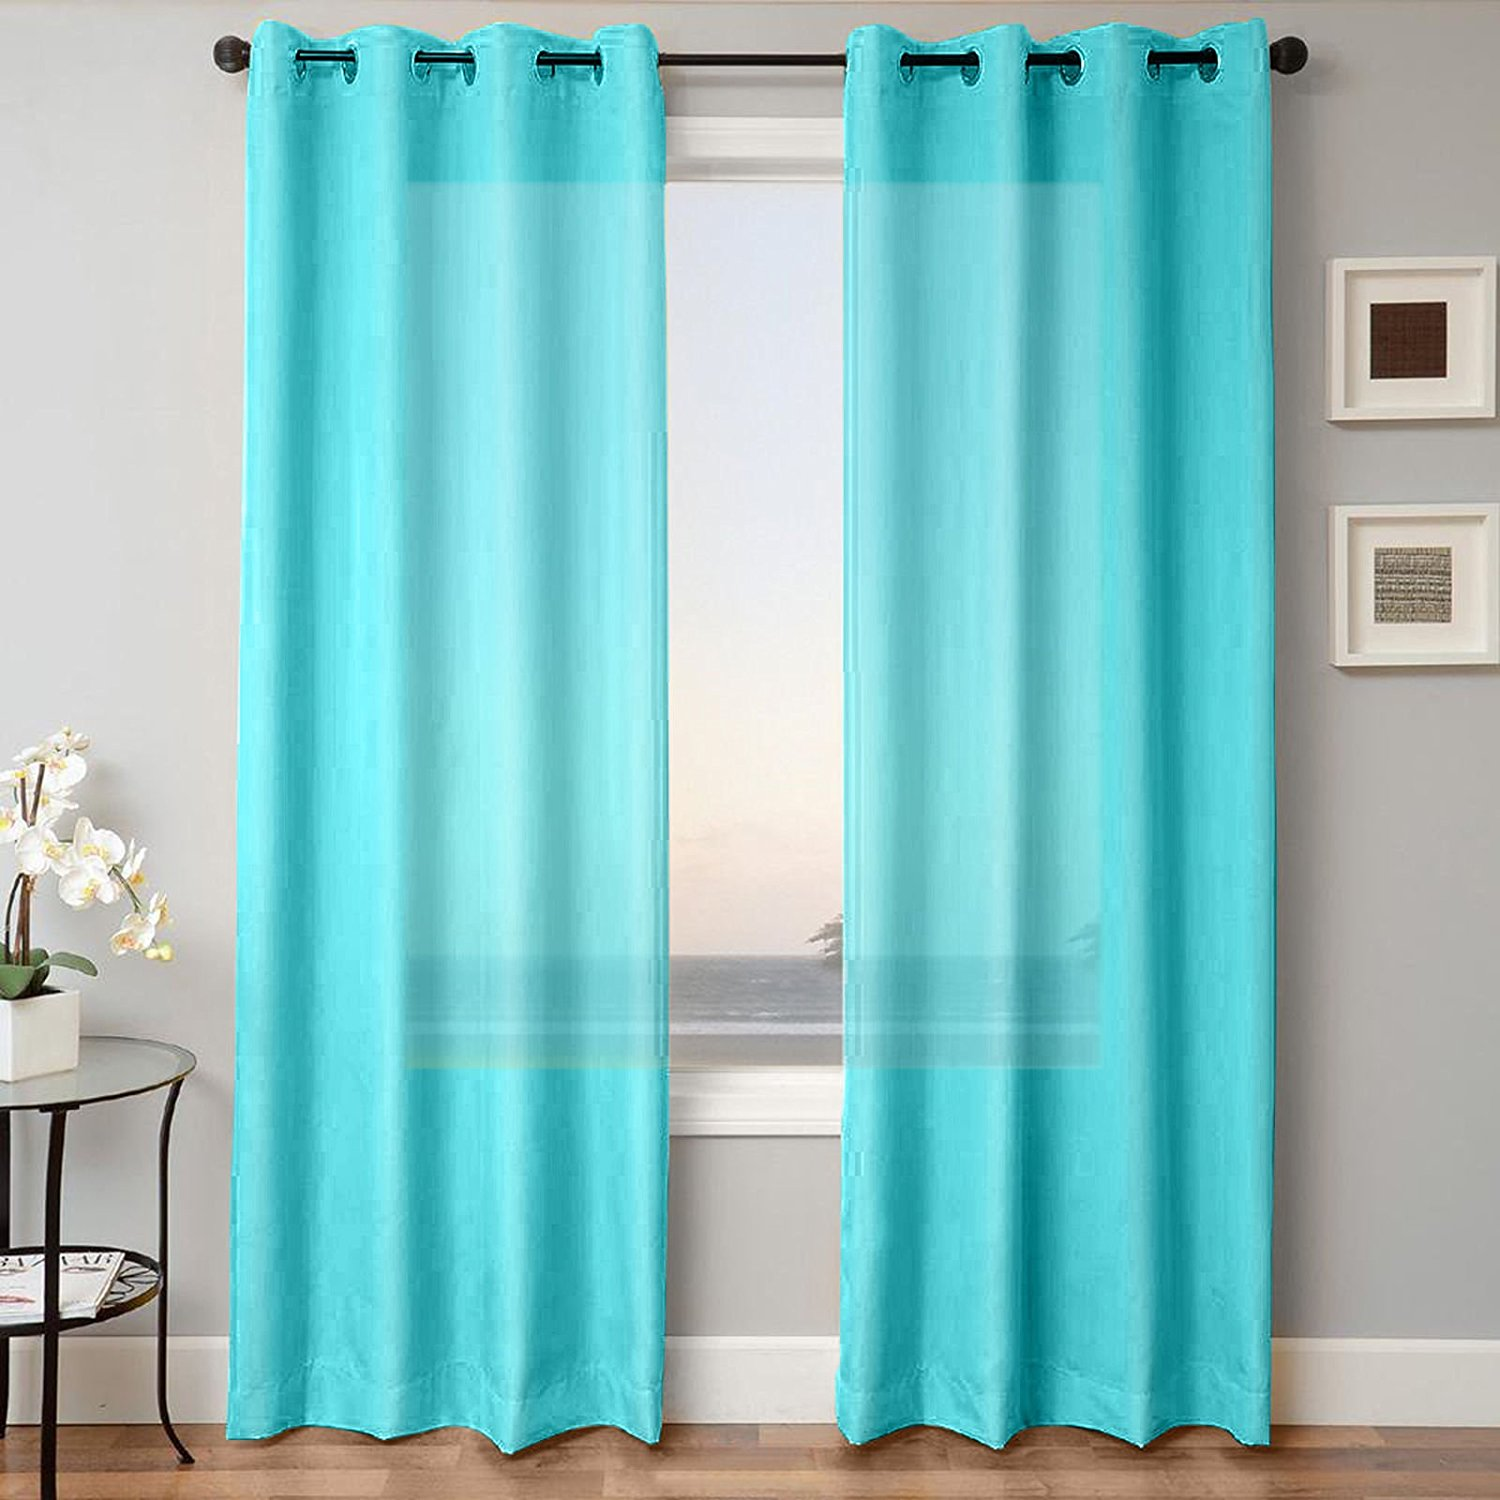 Pros of buying turquoise curtains